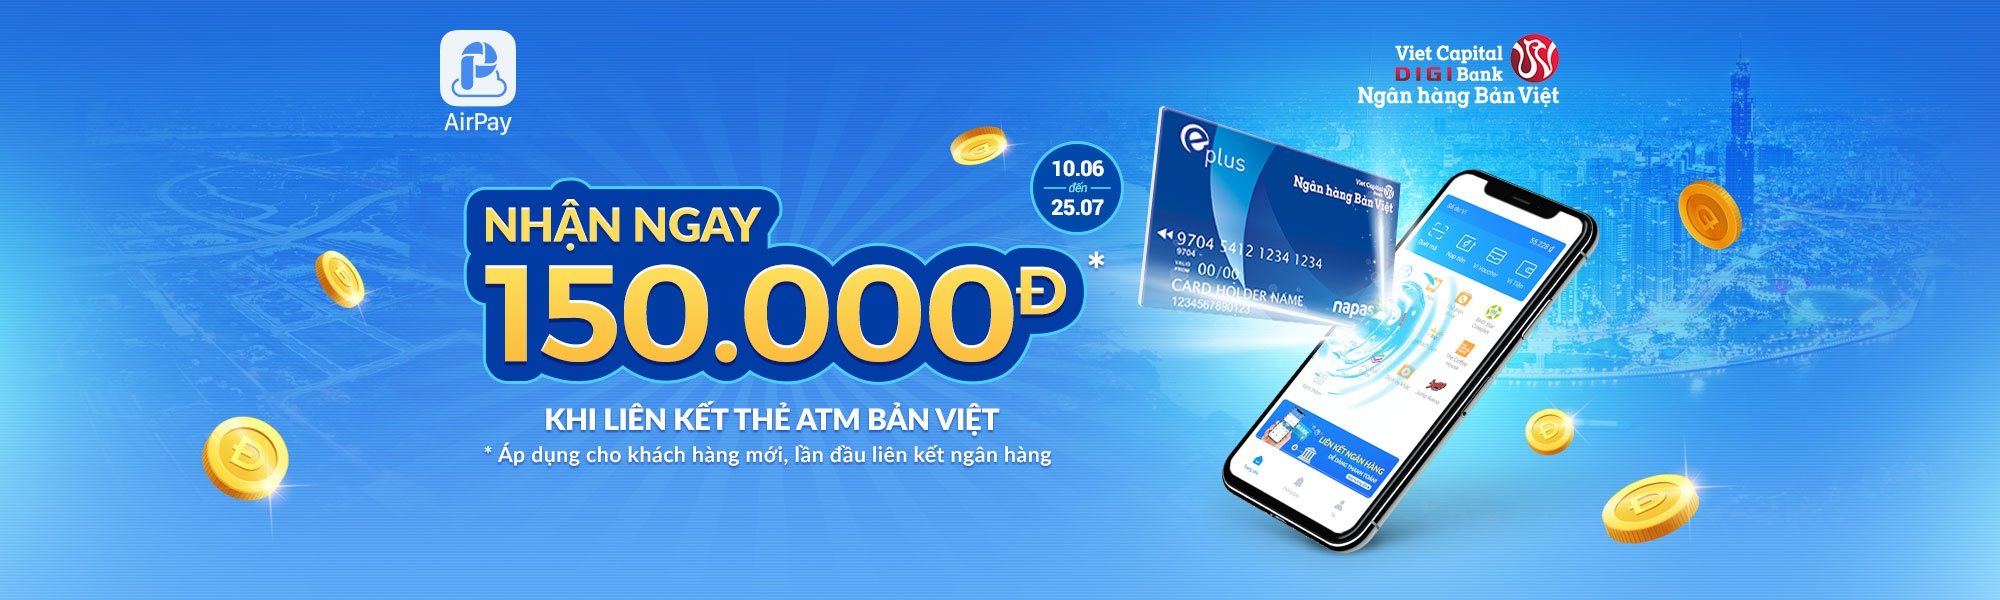 viet-capital-bank-promotion-2019